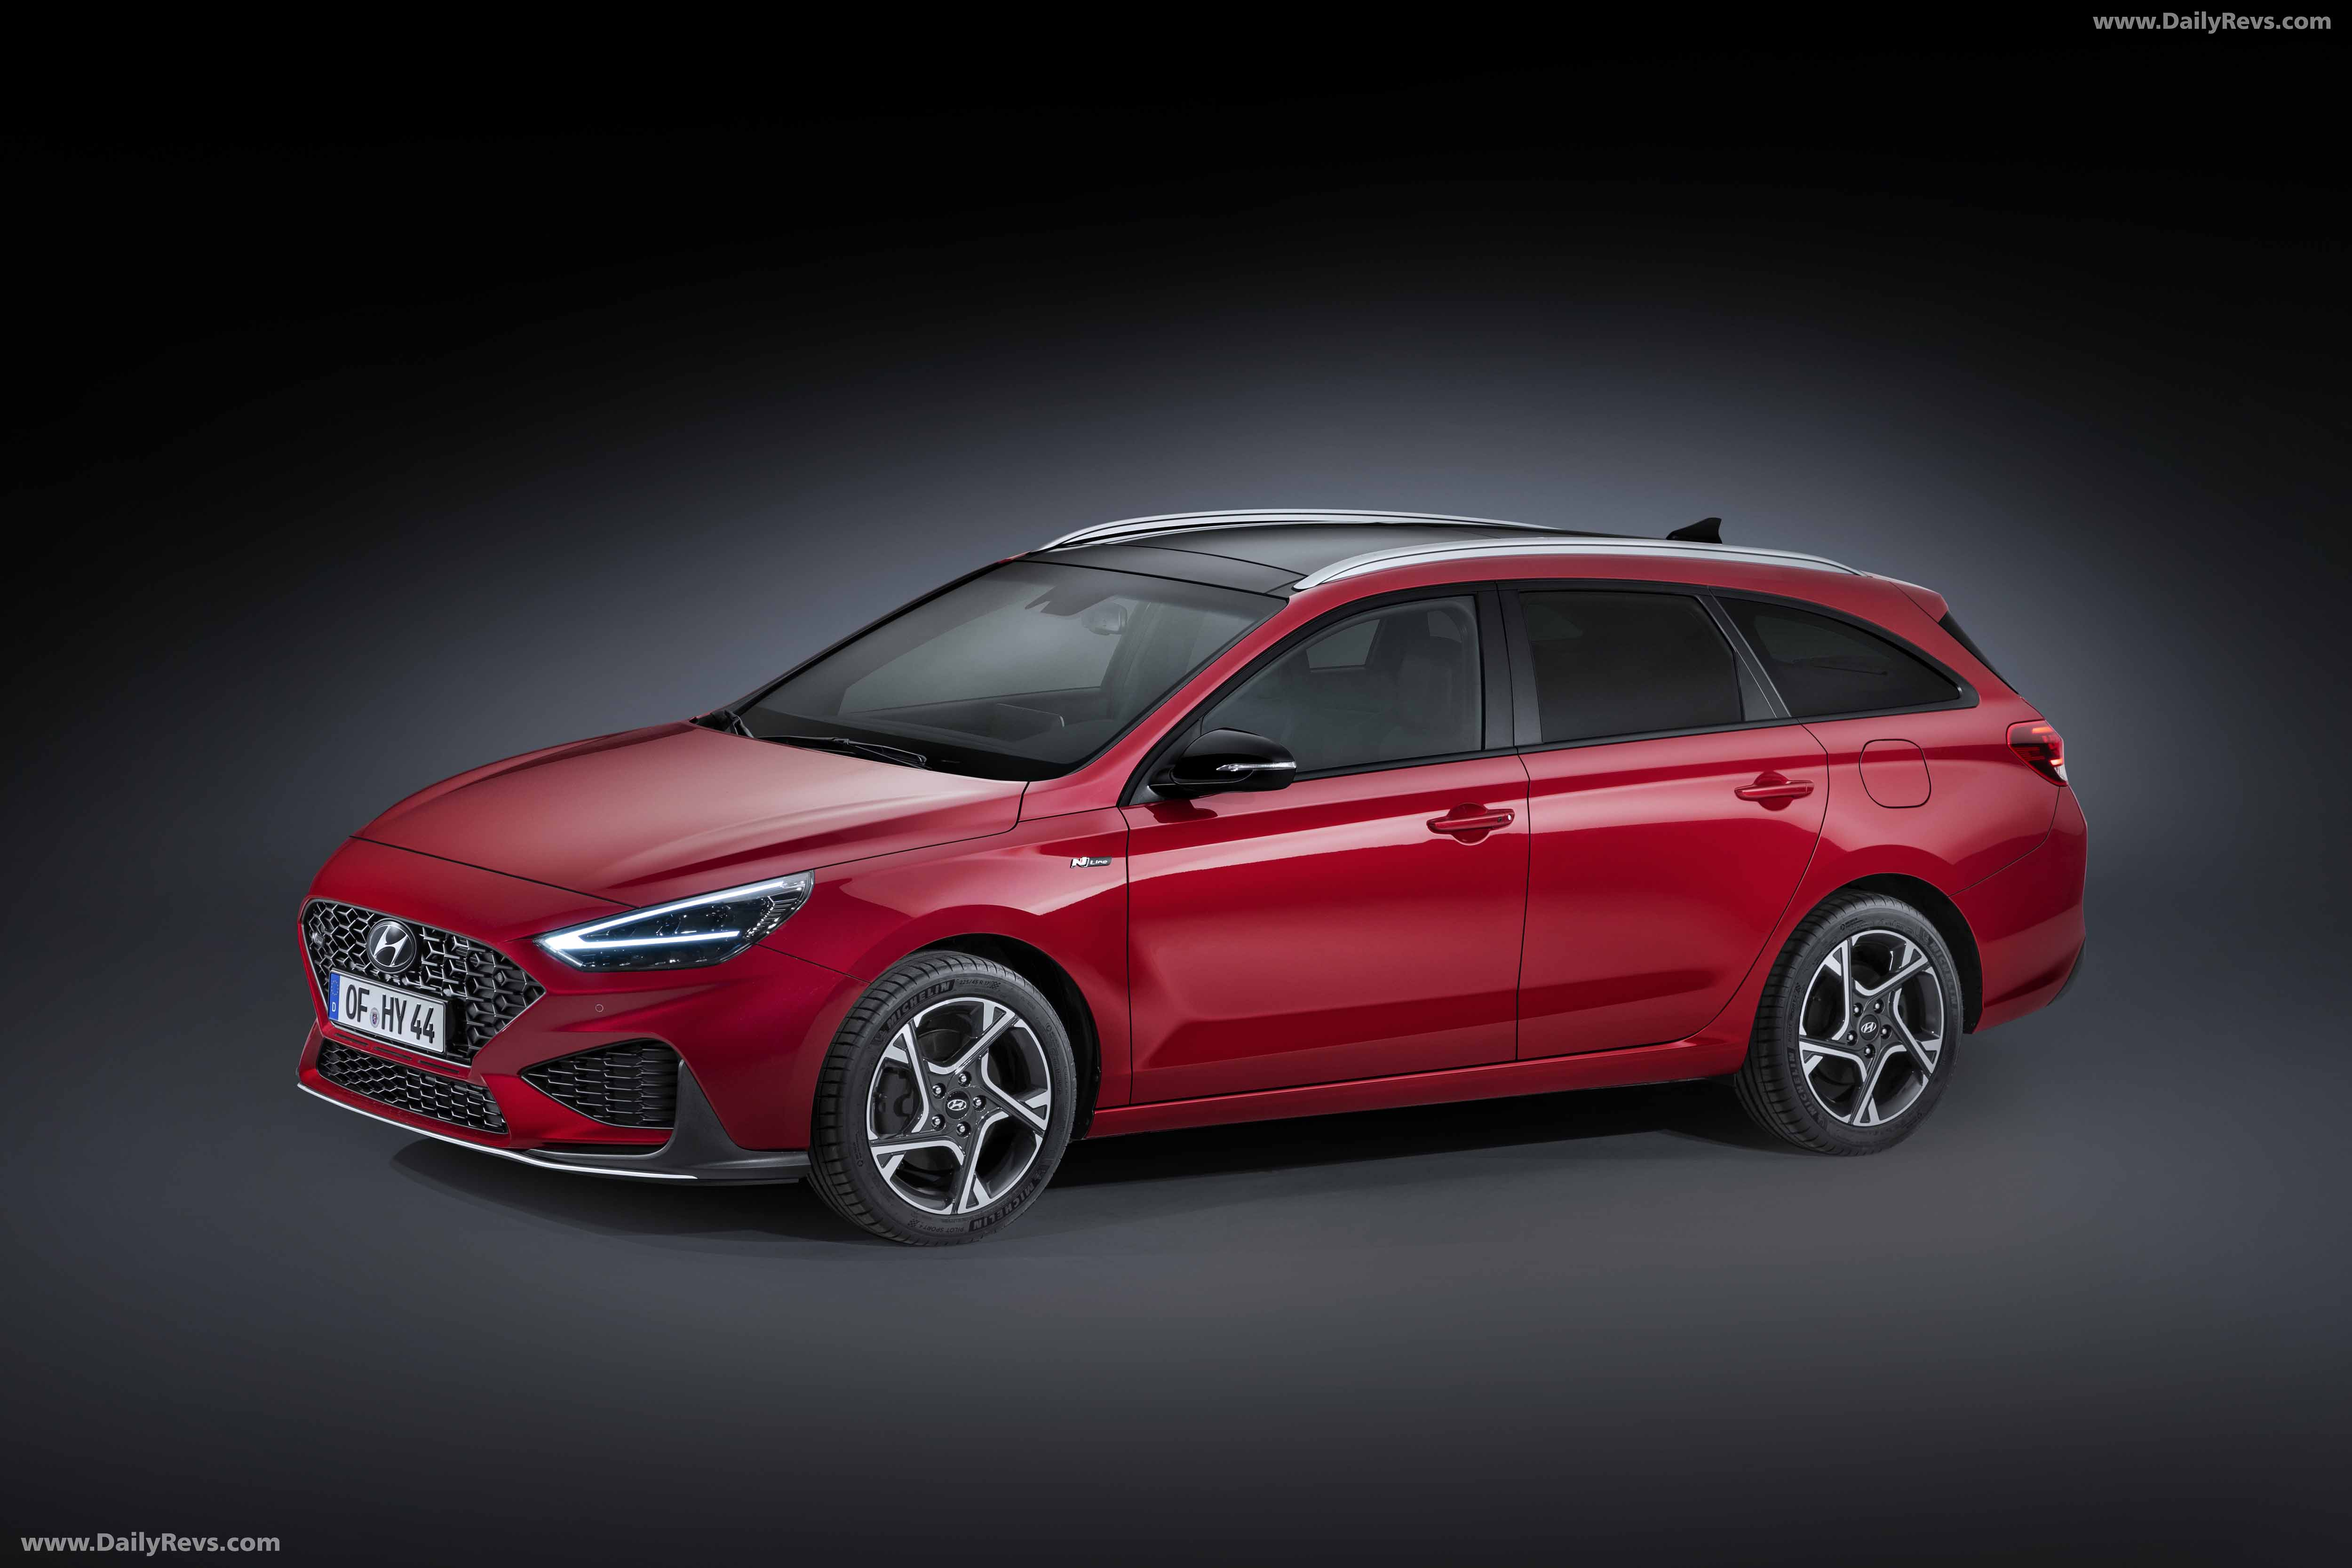 2020 Hyundai i30 Wagon - HD Pictures, Videos, Specs ...